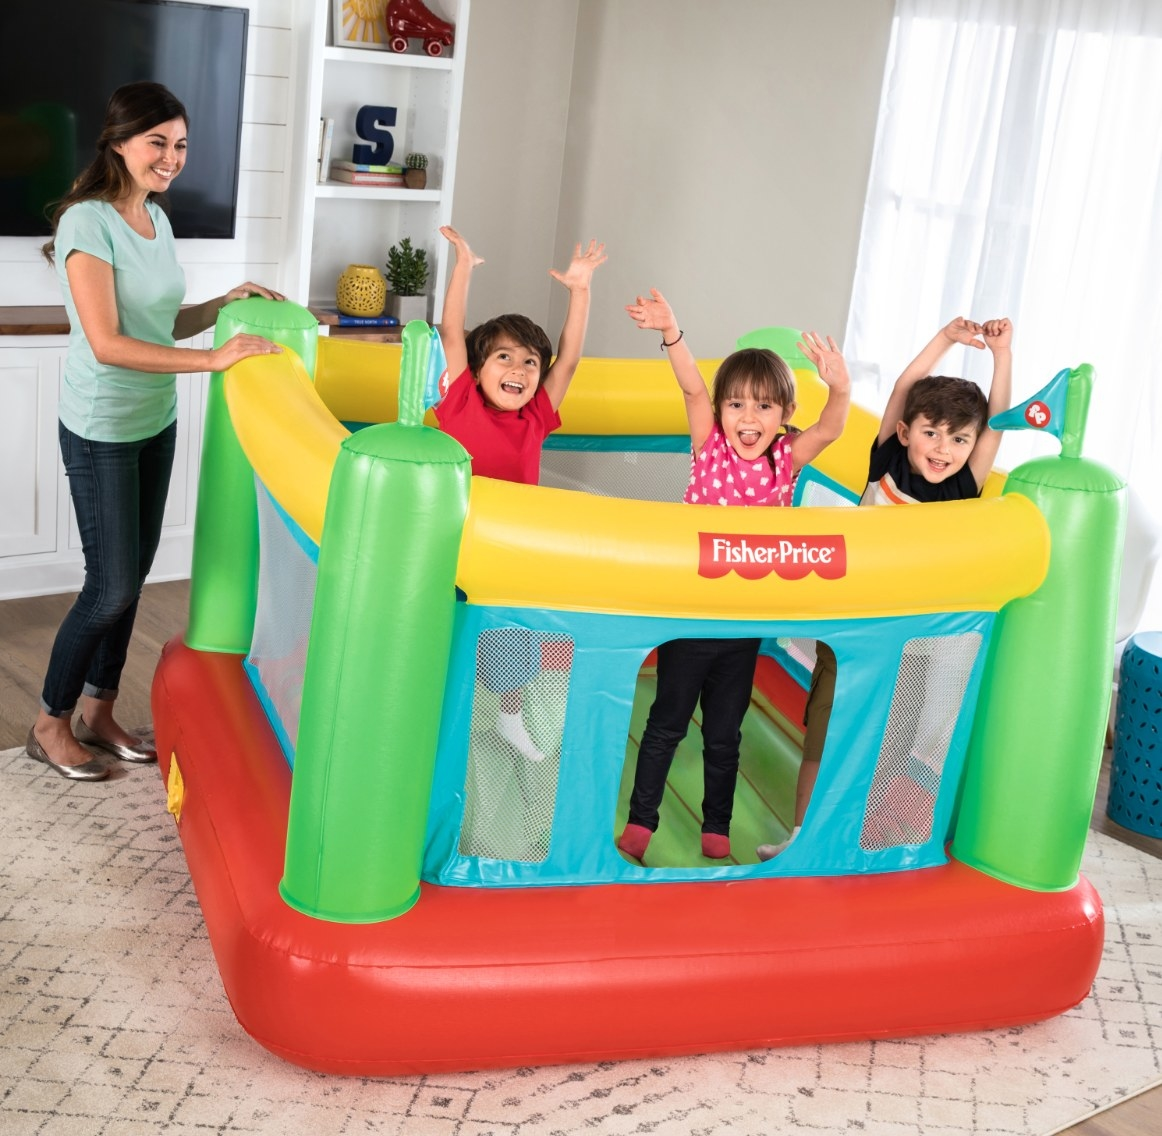 The bouncy house in yellow, green, blue, and red